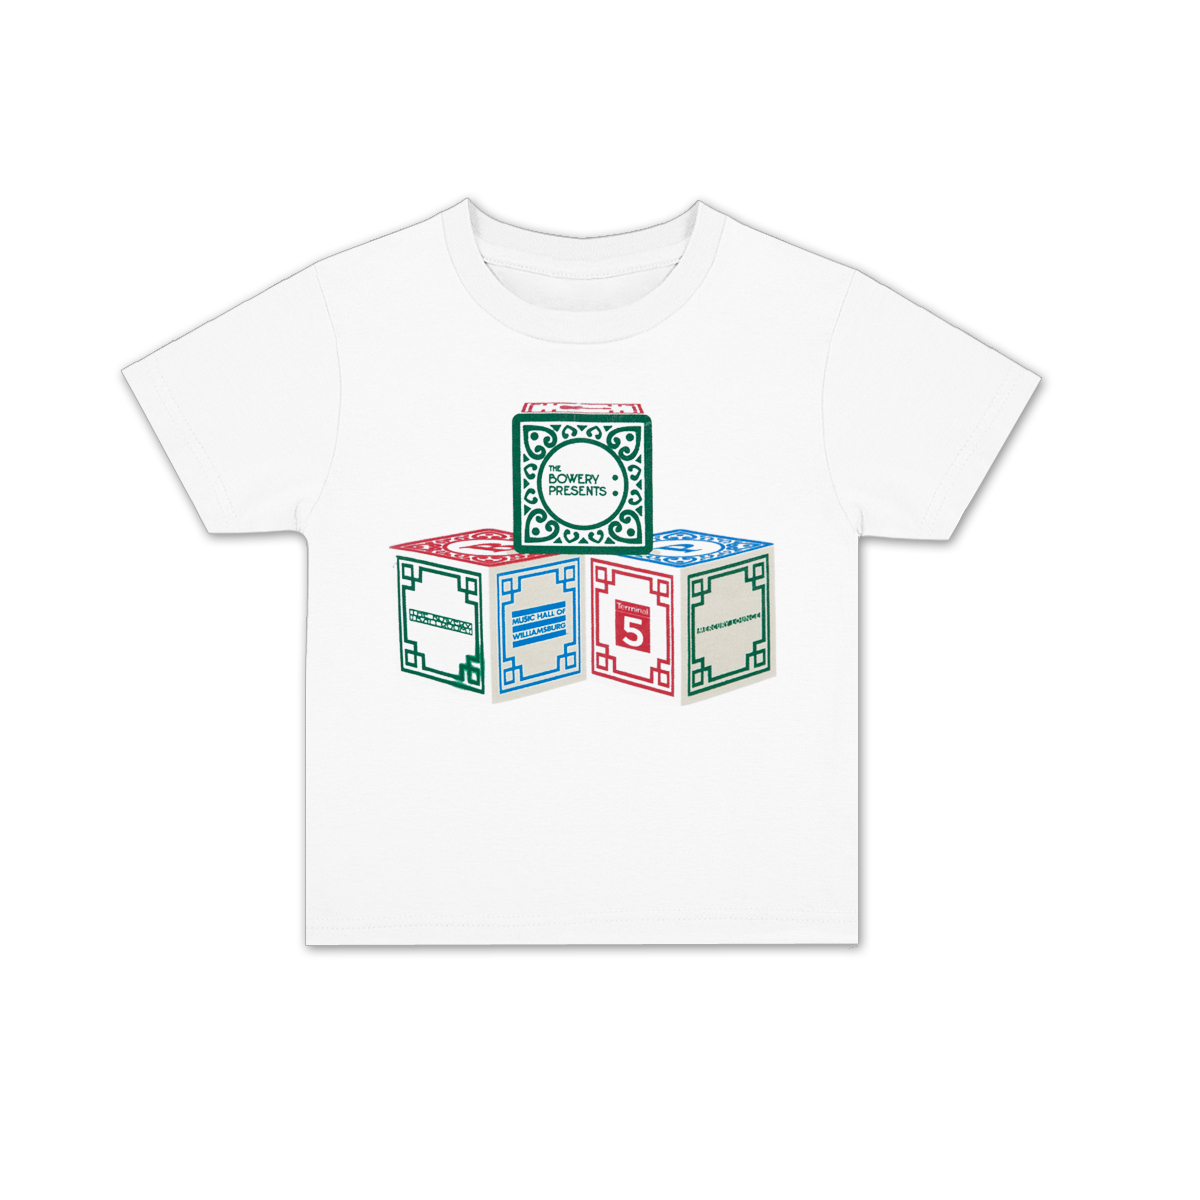 Bowery Presents Toddler S/S Tee